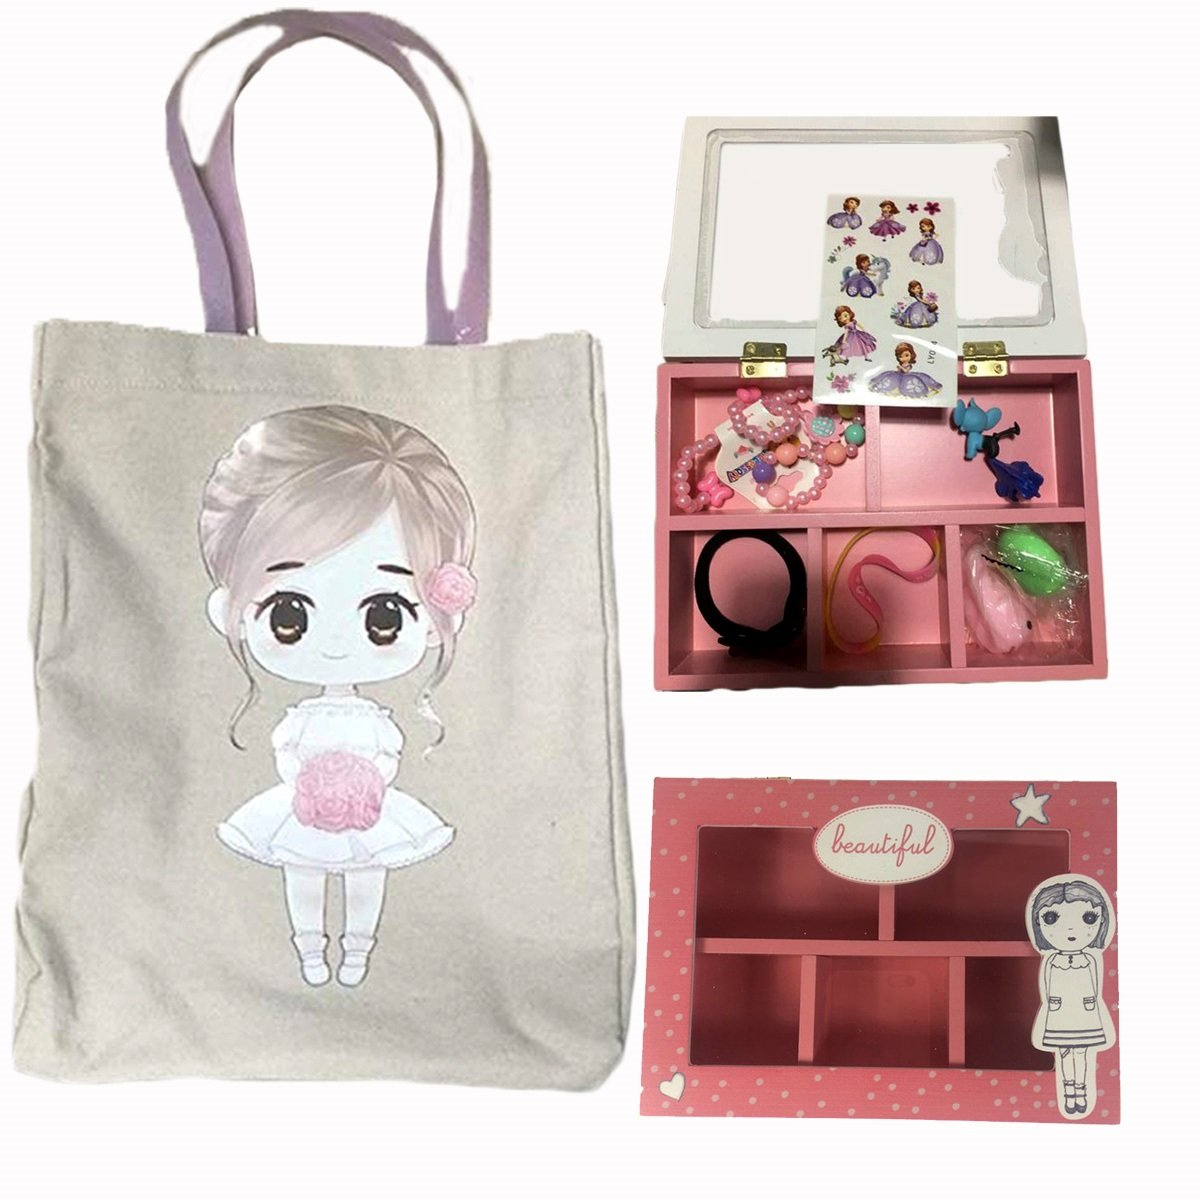 FLOWER Girl Wedding Birthday Christmas Favors Gift Tote Bag Cotton with Beautiful Wood Trinket Box full of toys favors girls jewelry headbands by Global Huntress (Image #8)